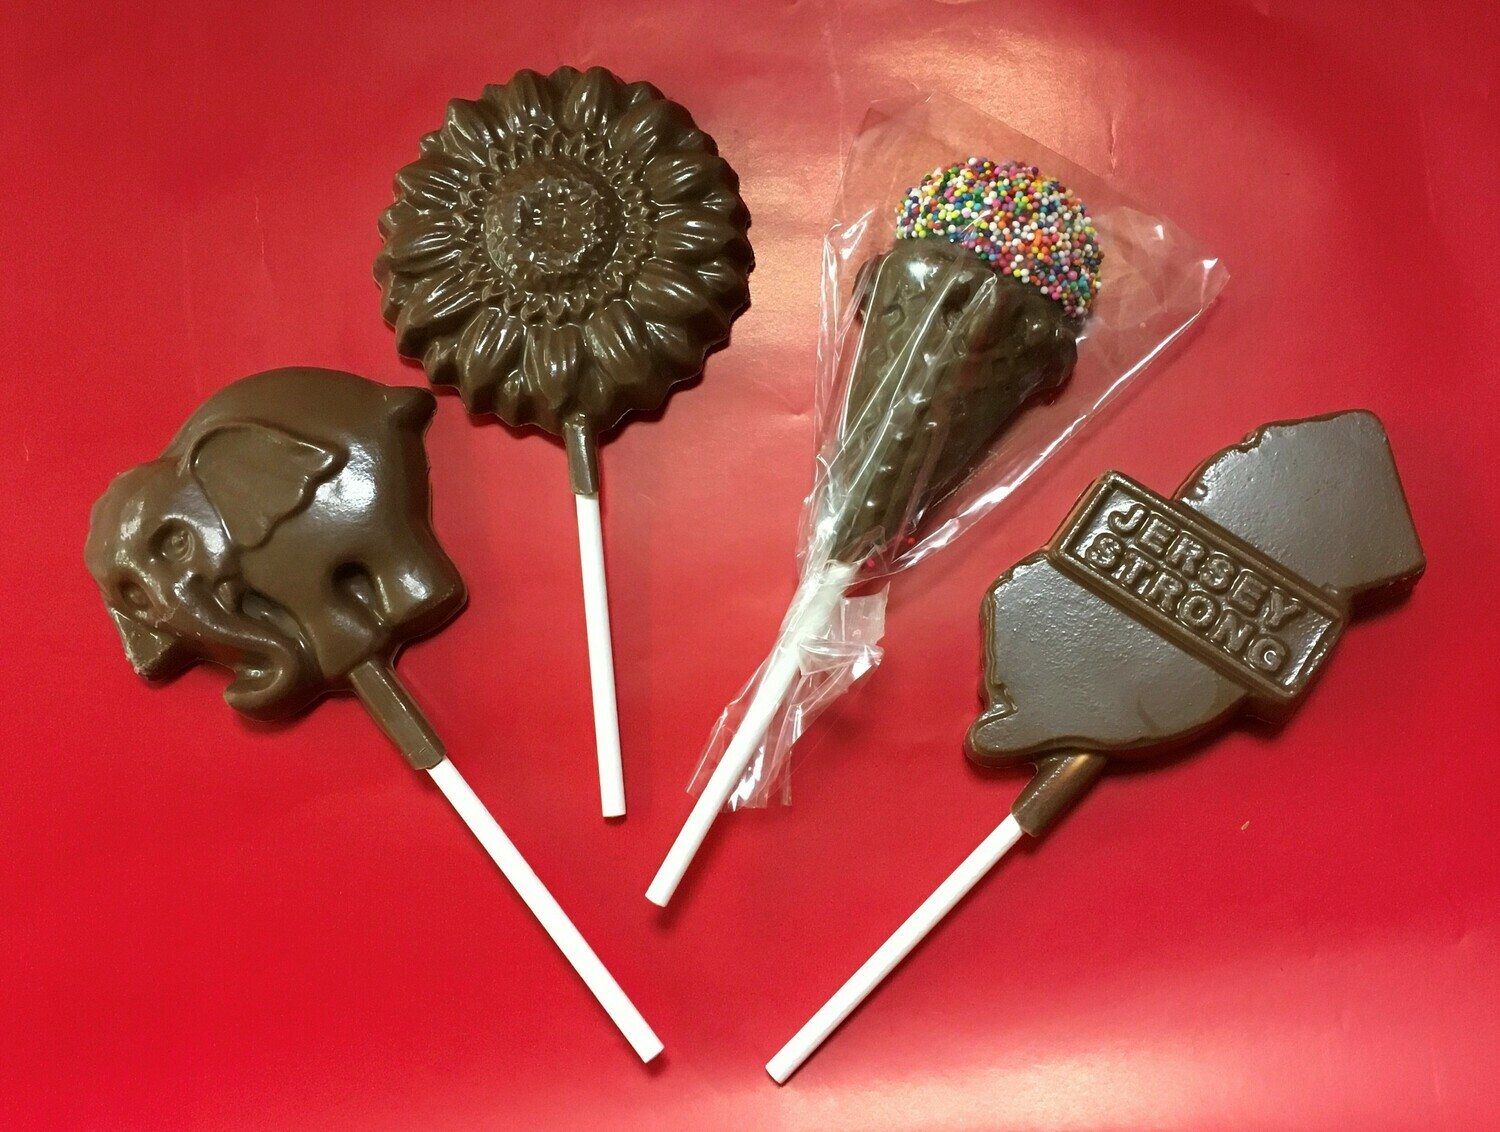 Chocolate Pops.  We only show a few here but we have pops for many occasions.  Give us a call and we will work with you to create your themed chocolate pop! Pops can be made in milk or dark.